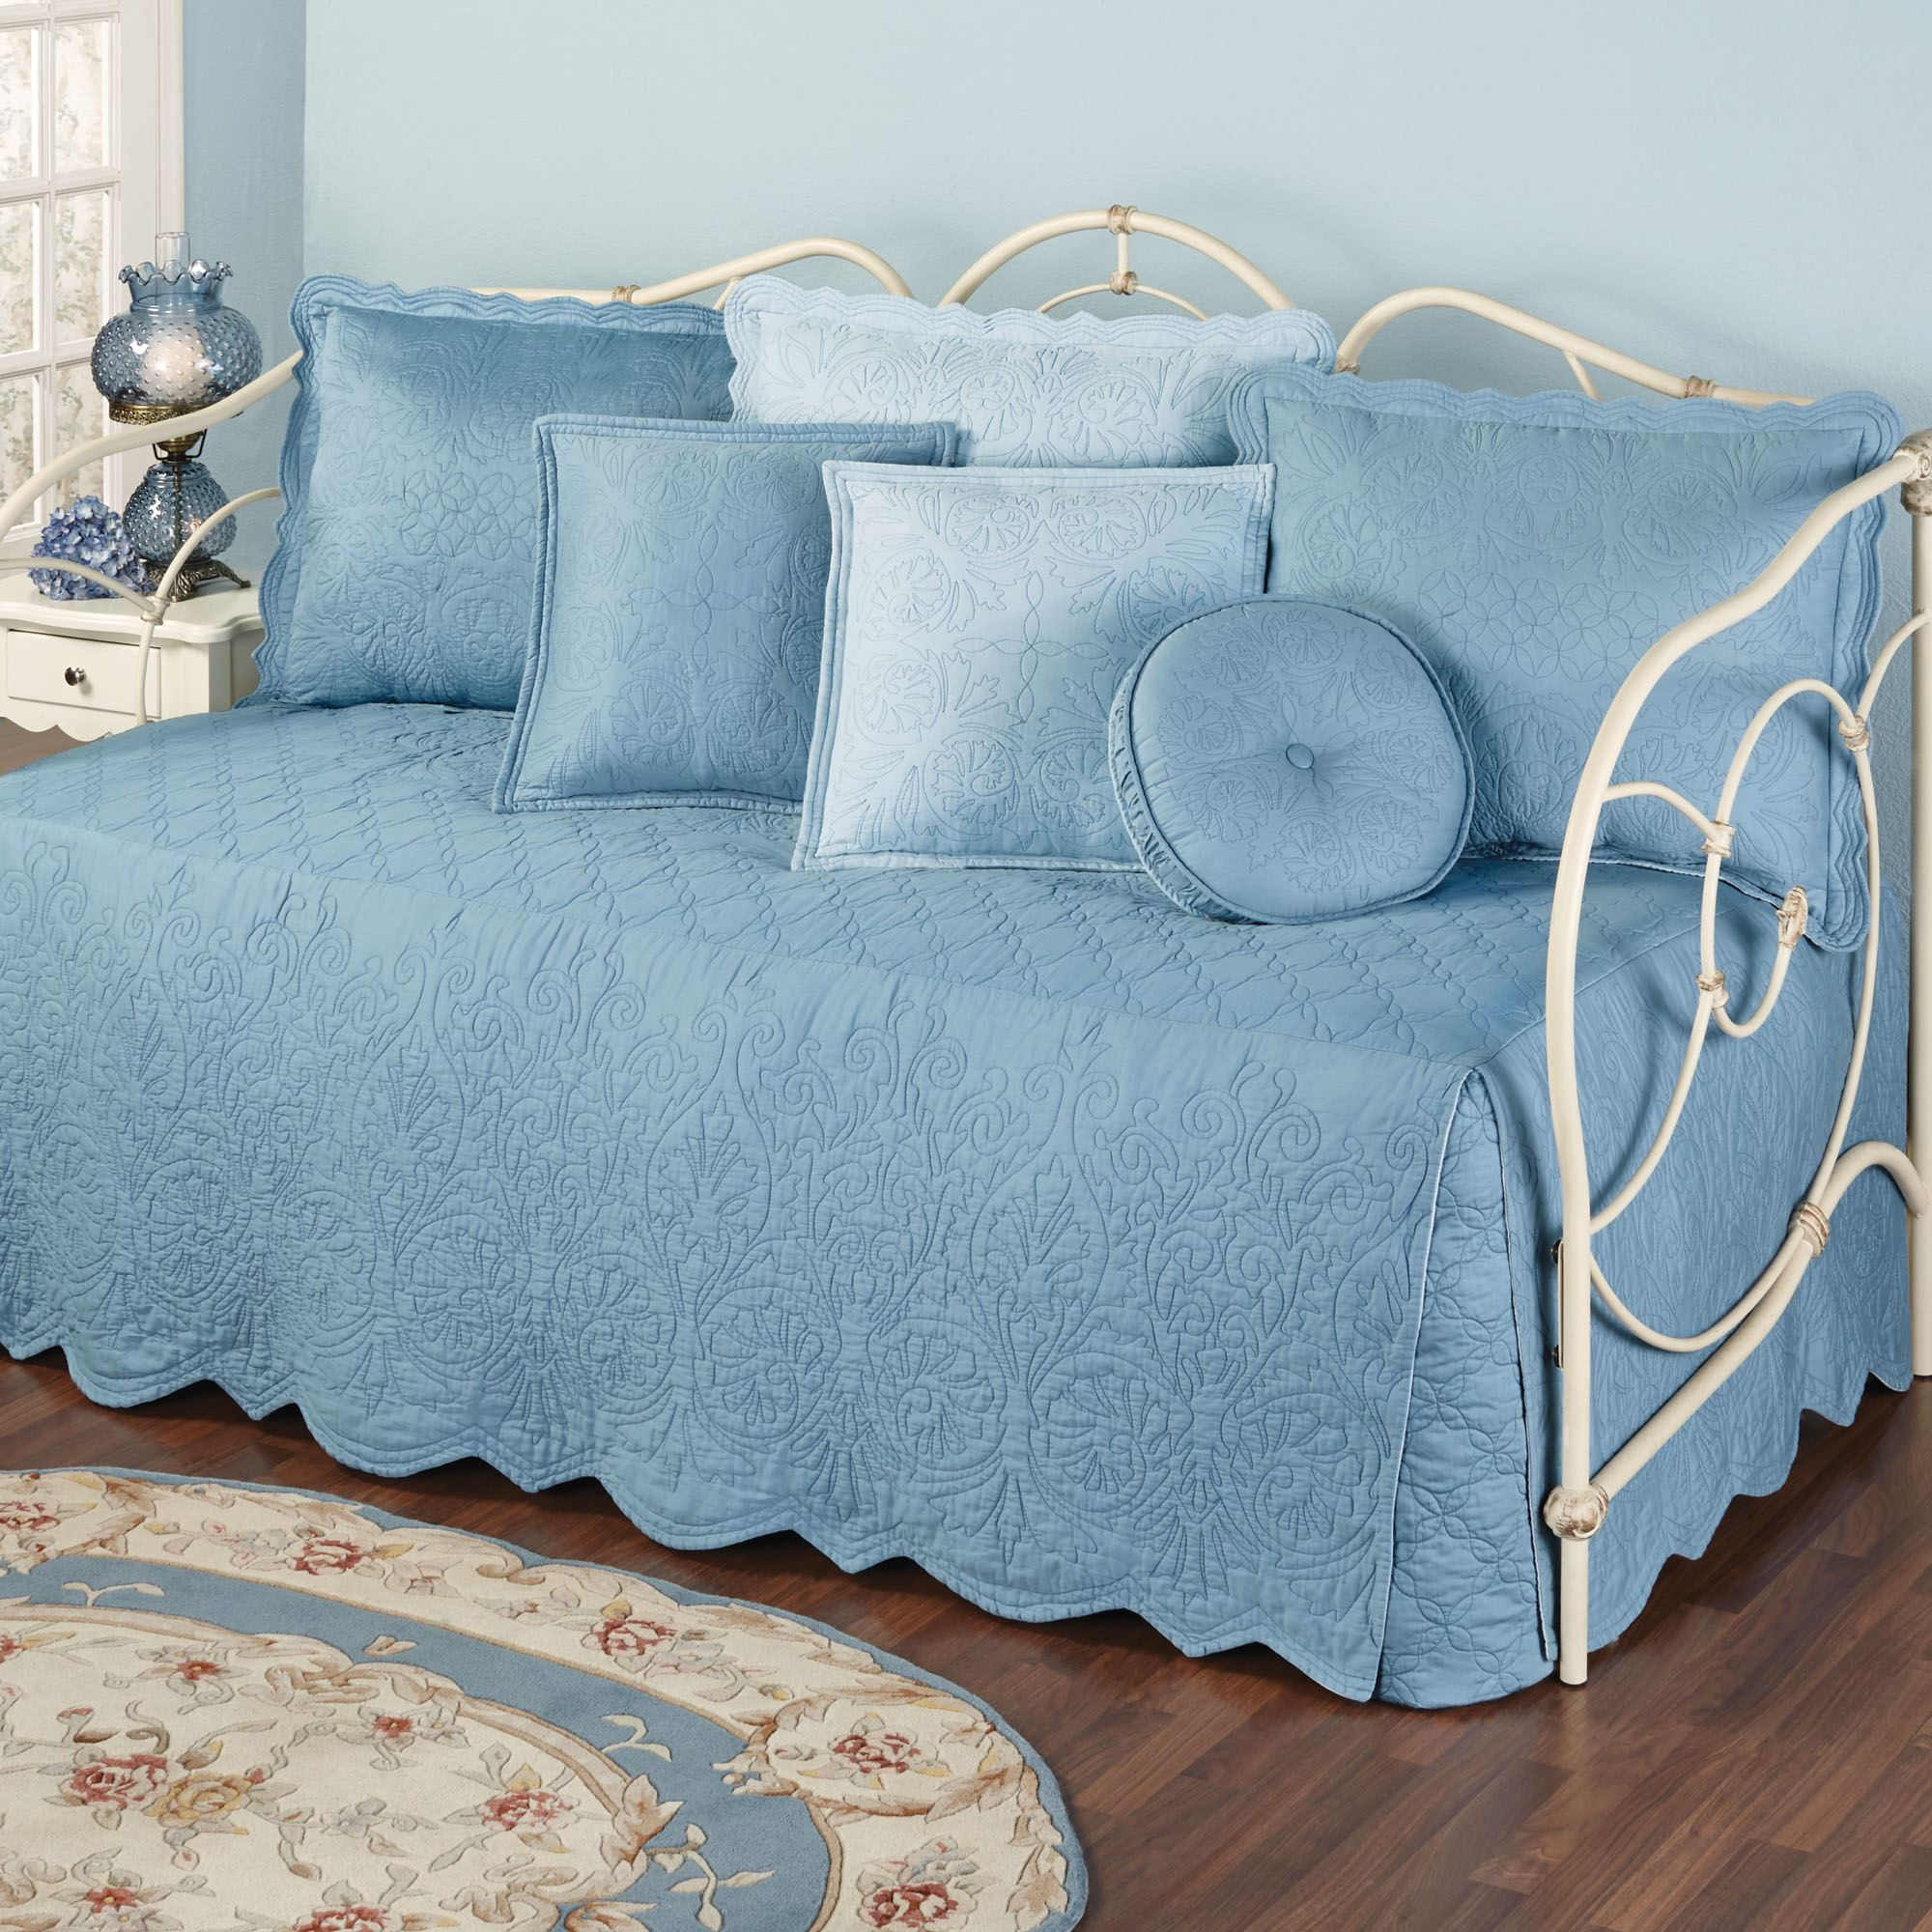 Everafter Dusty Blue Quilted Daybed Bedding Set